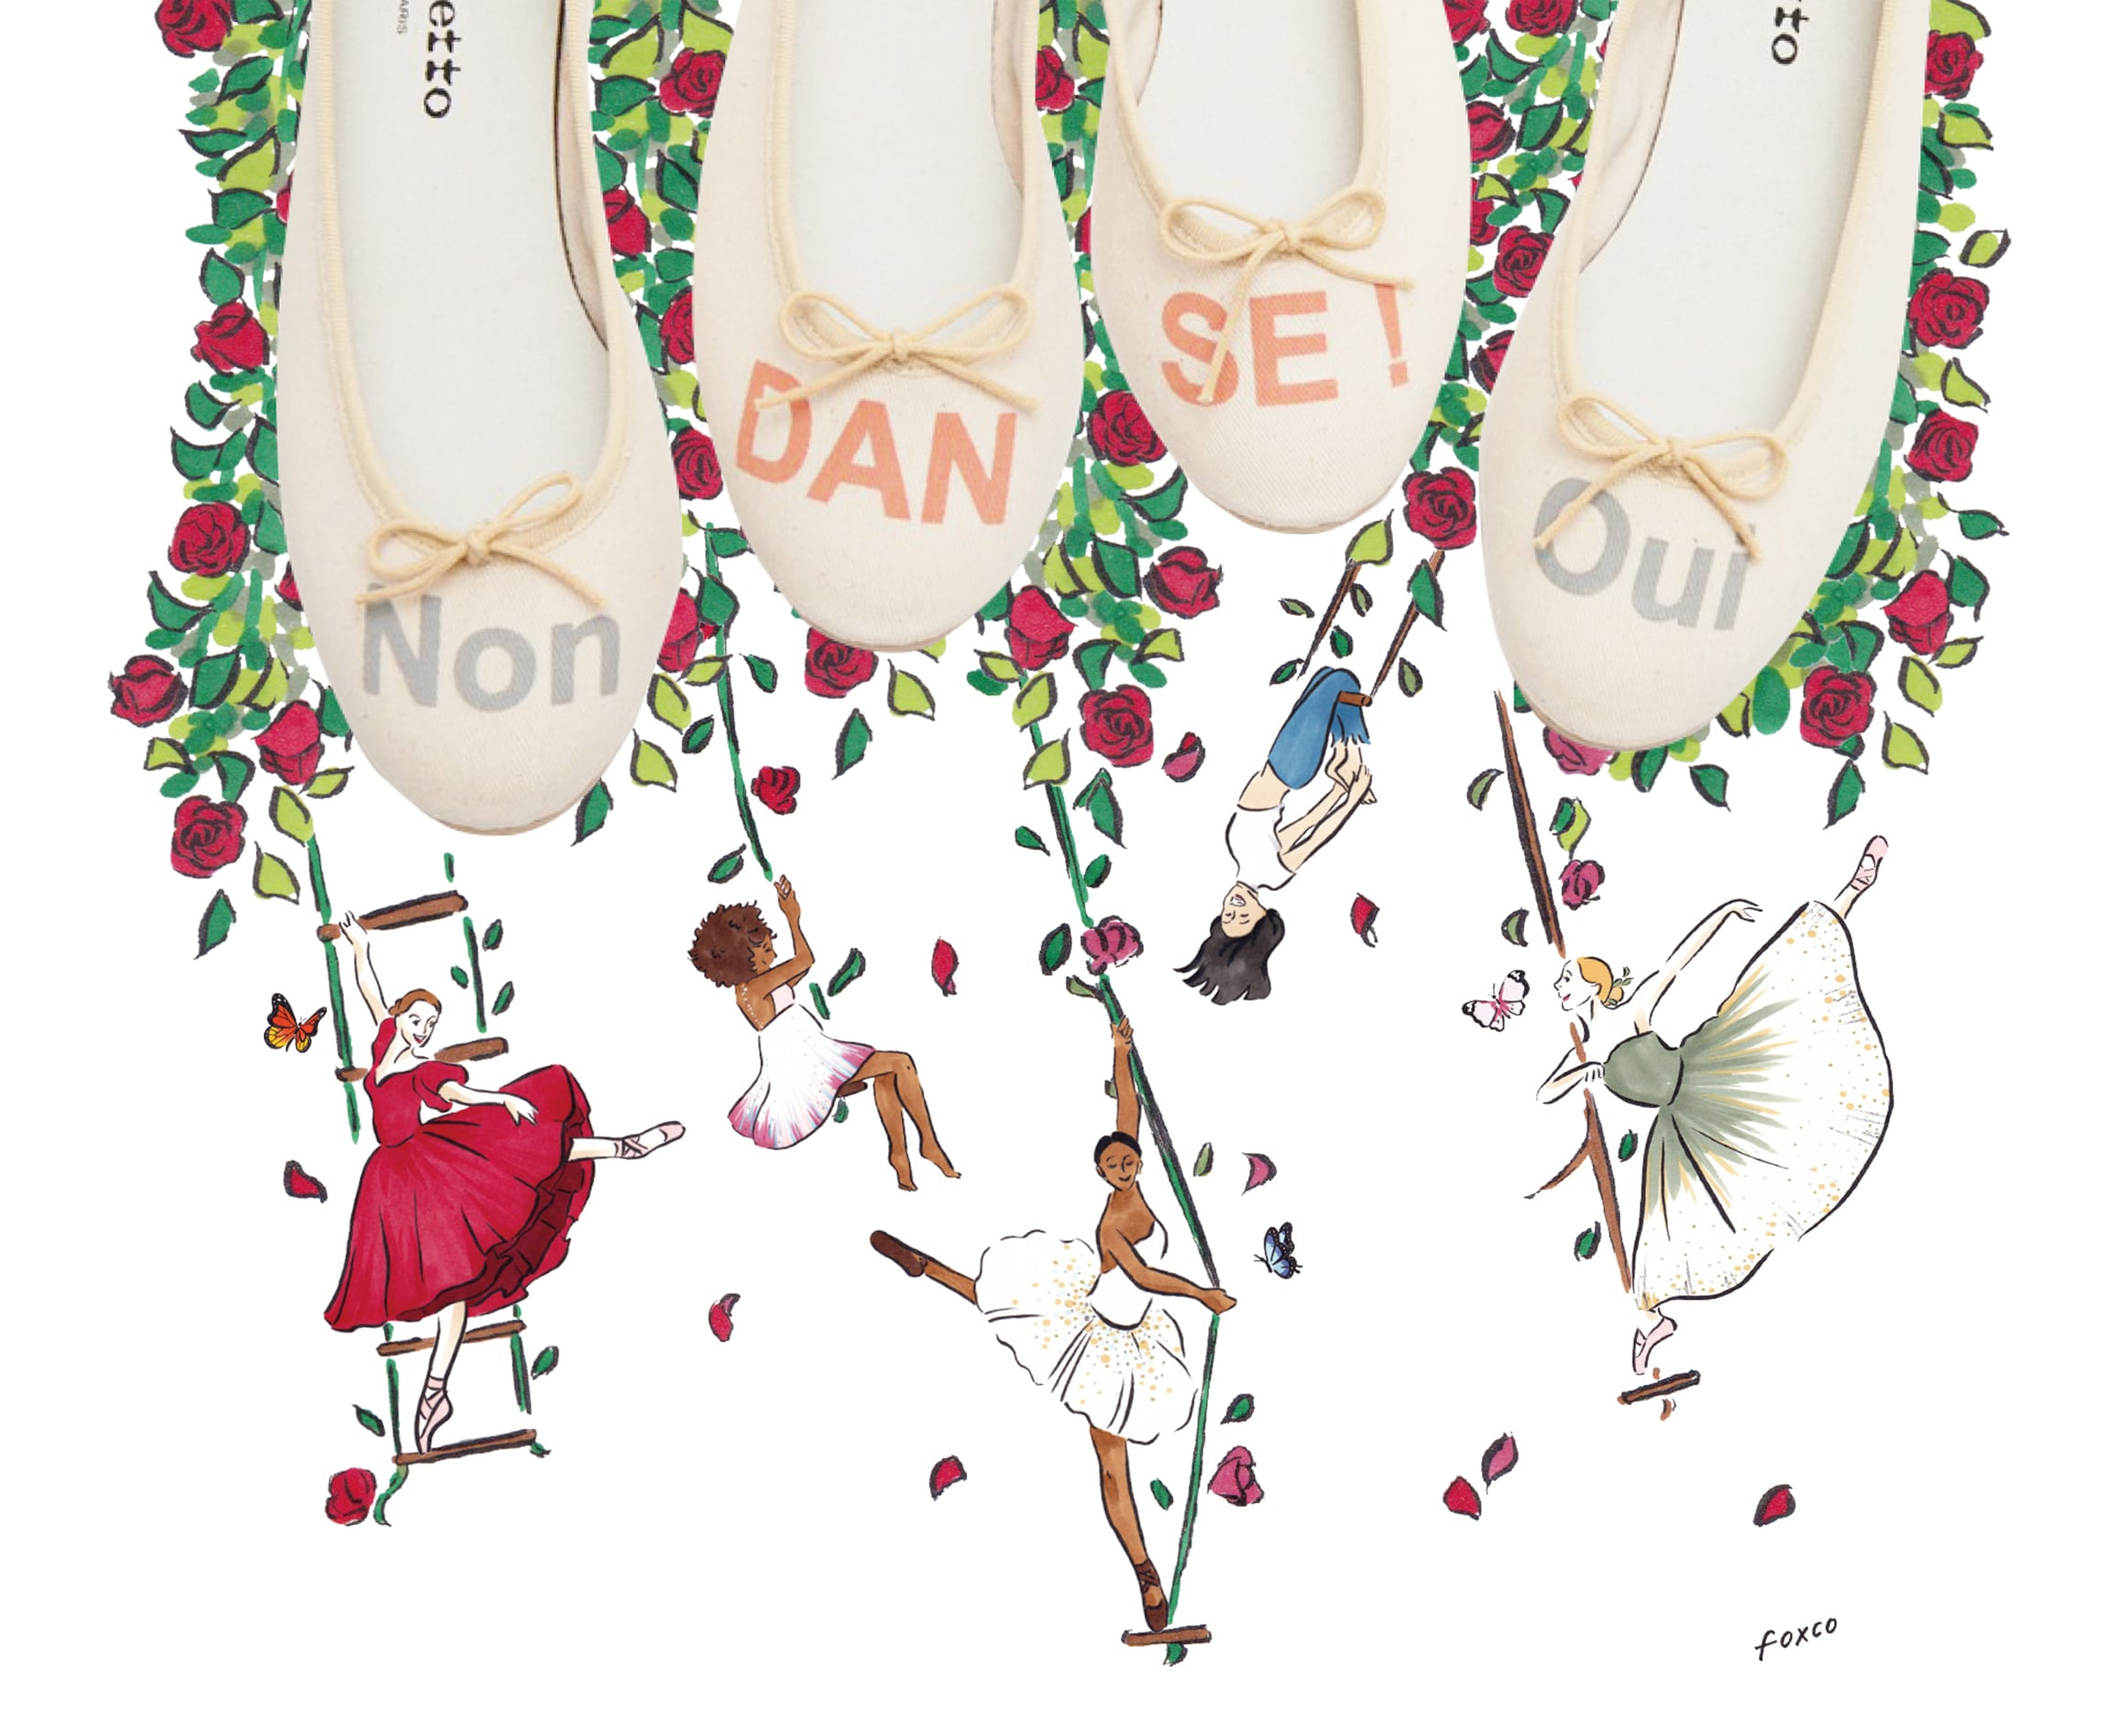 Repetto Illustration Campaign